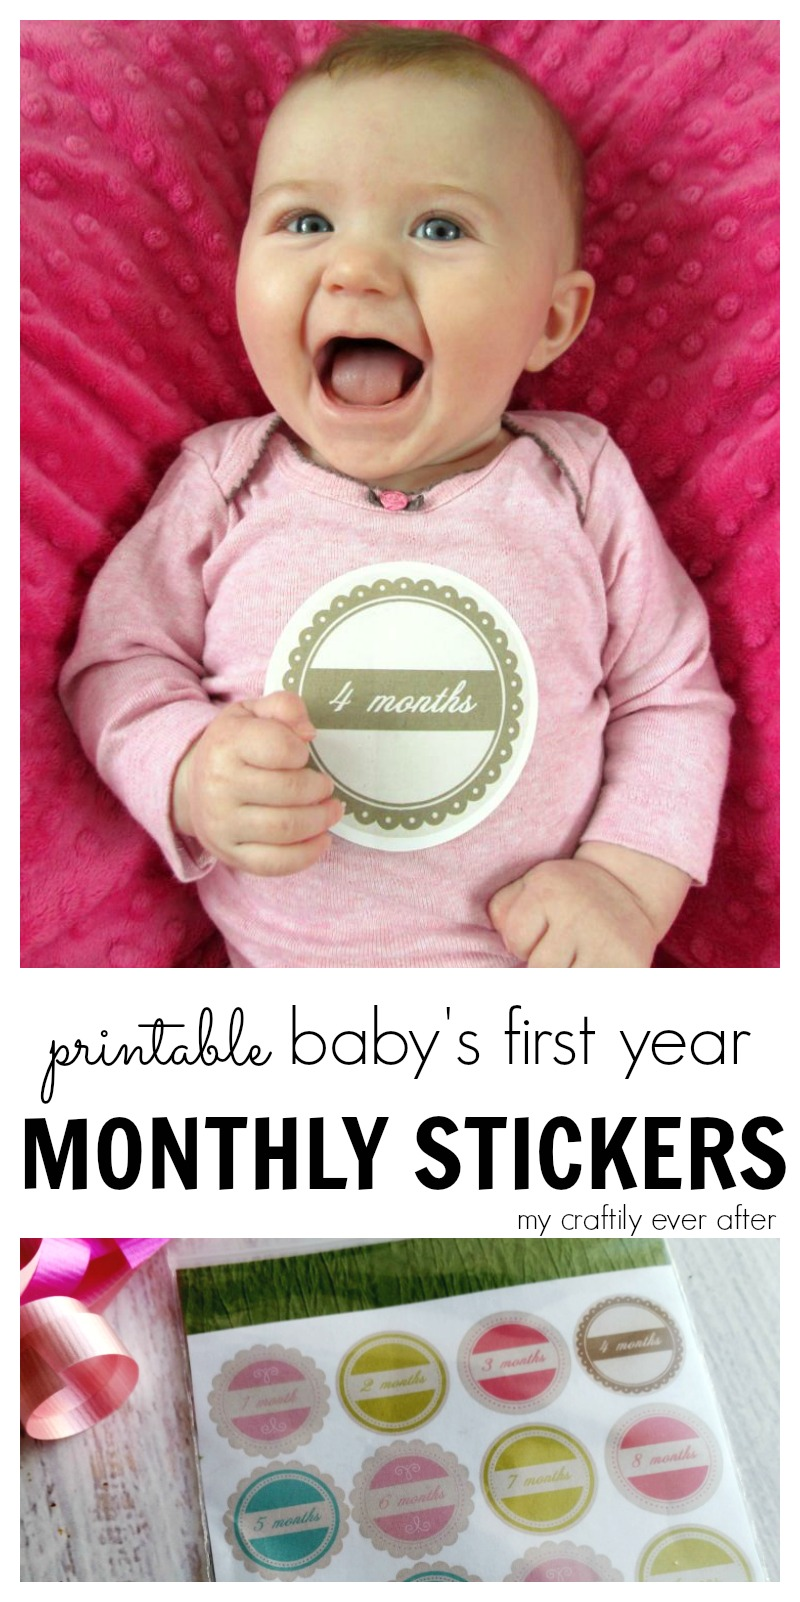 baby's first year monthly stickers